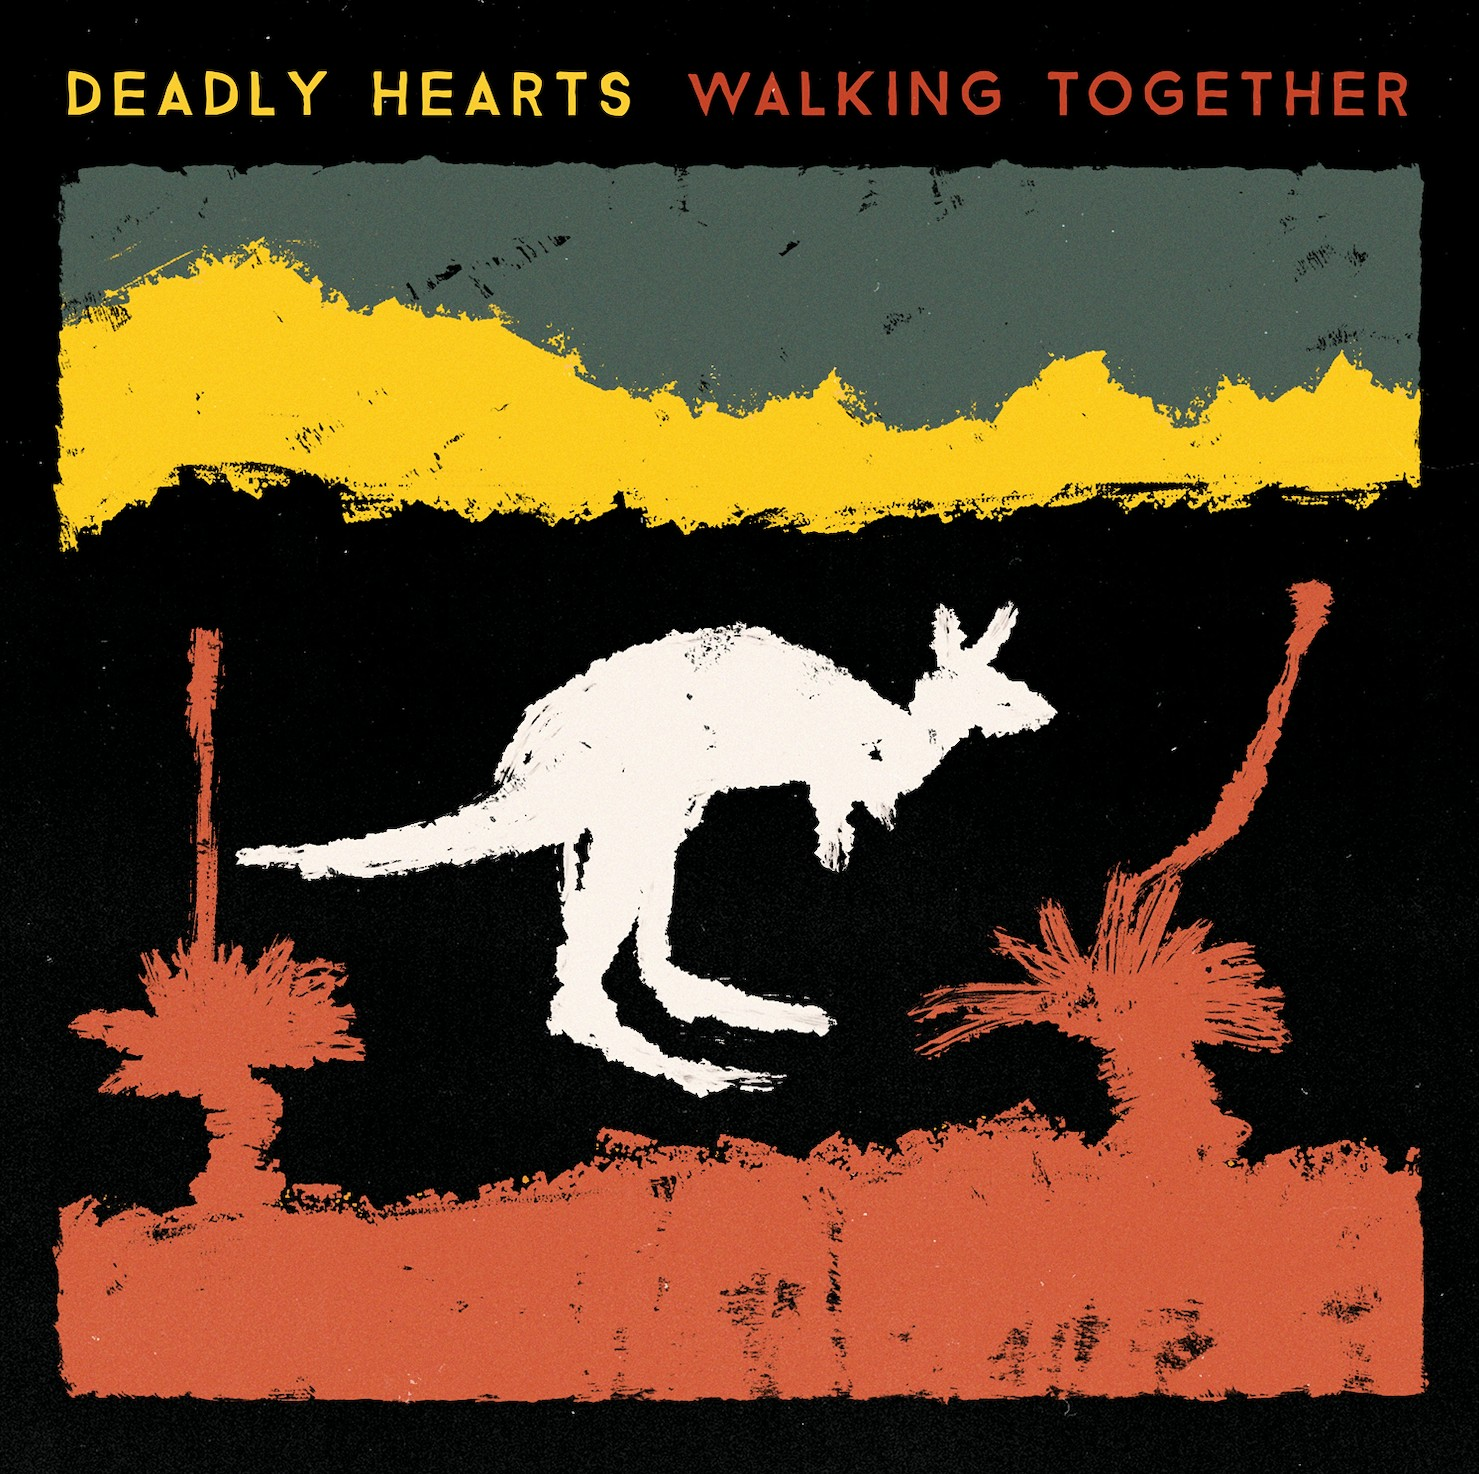 deadly hearts walking together album art